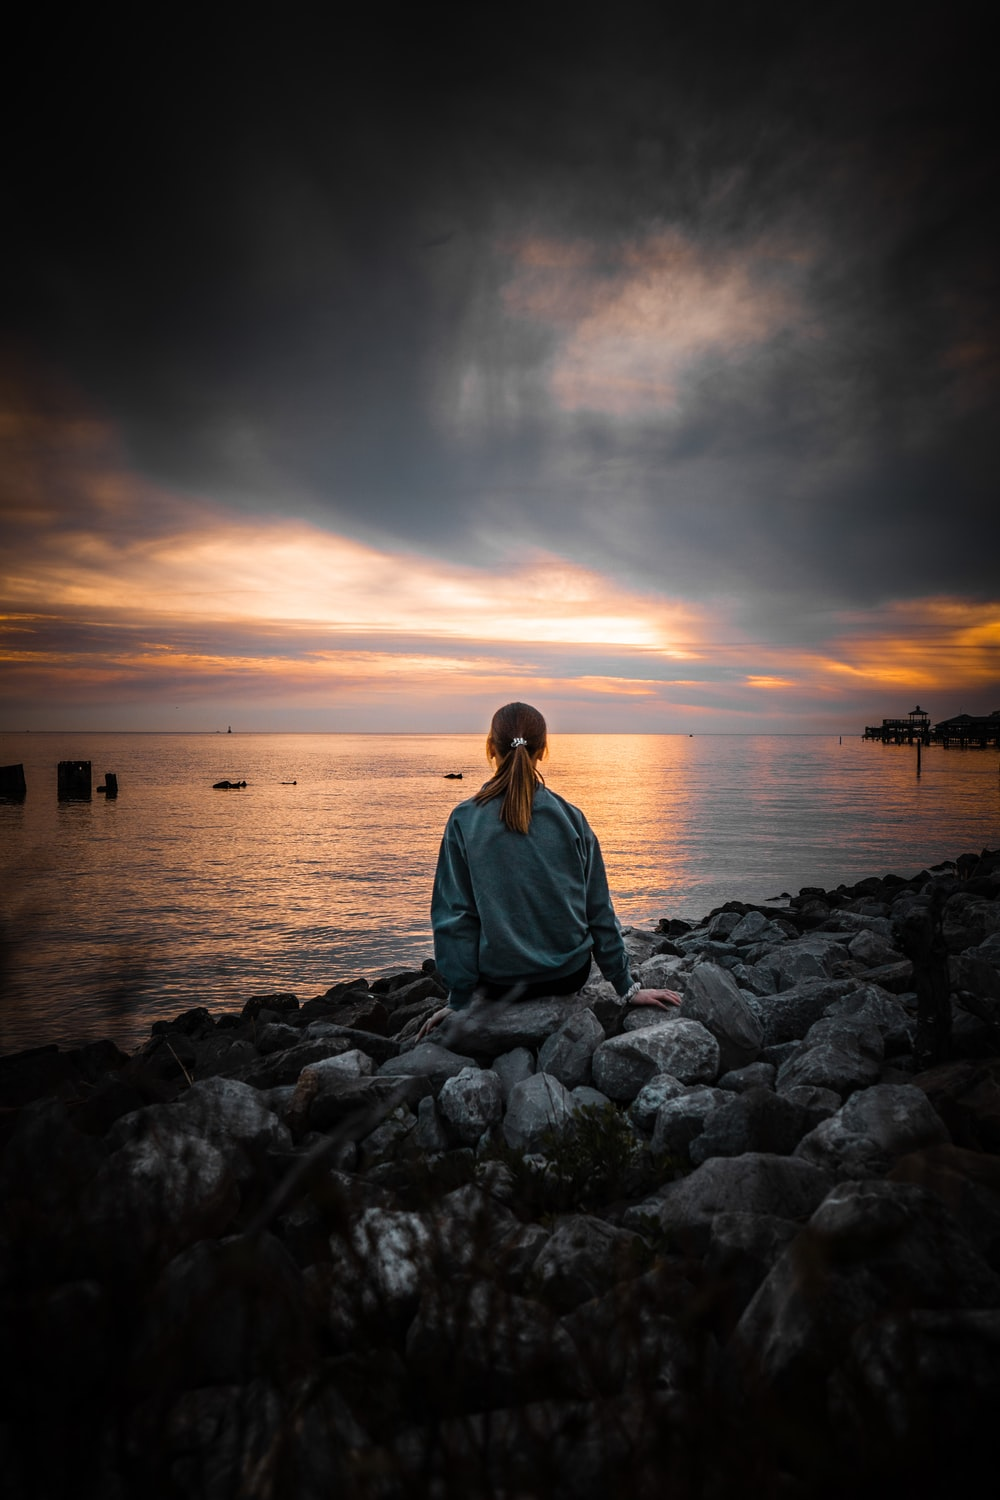 woman in blue long sleeve shirt sitting on gray rock near body of water during sunset